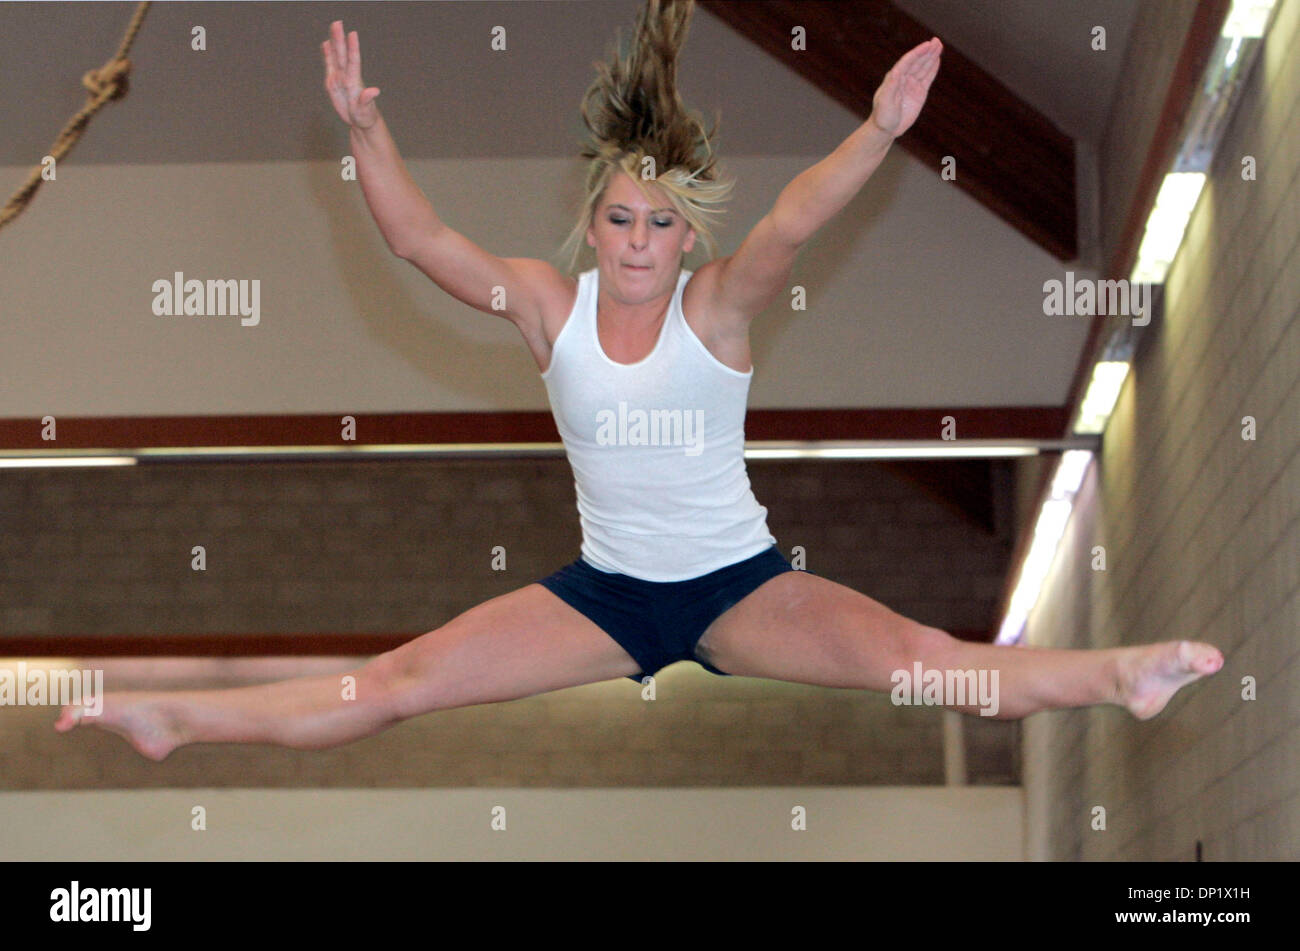 Straddle Jump Stock Photos Amp Straddle Jump Stock Images